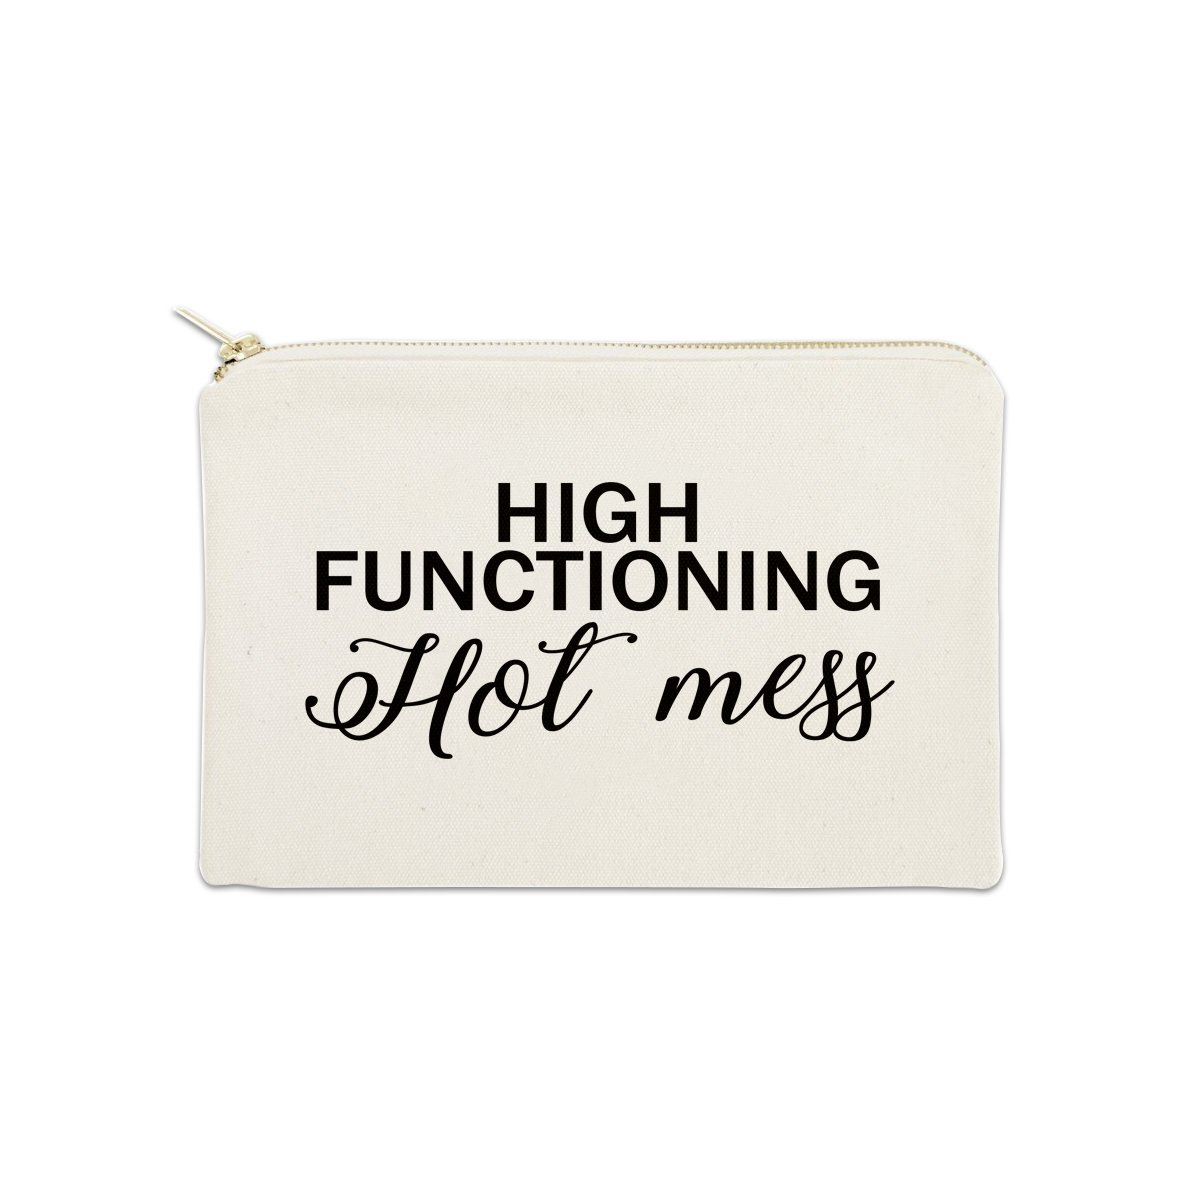 High Functioning Hot Mess 12 oz Cosmetic Makeup Cotton Canvas Bag - (Natural Canvas)